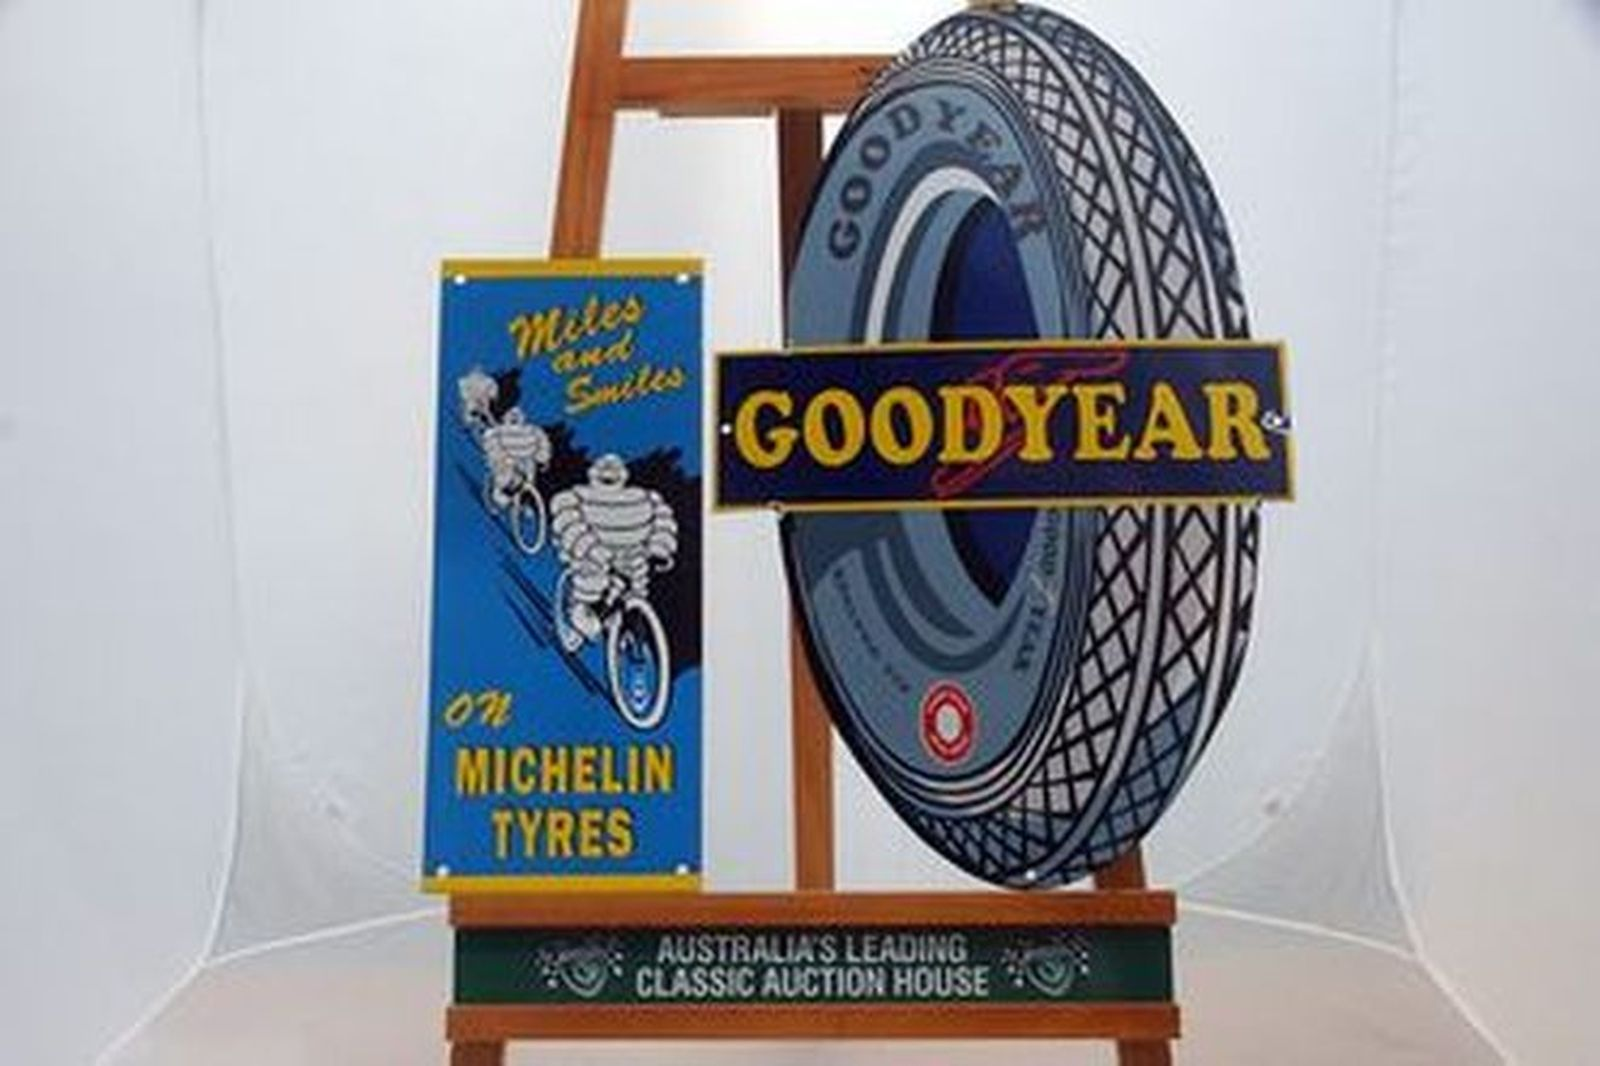 Enamel Signs x 2 - Goodyear Tyres & Michelin 'Miles & Smiles' Reproduction